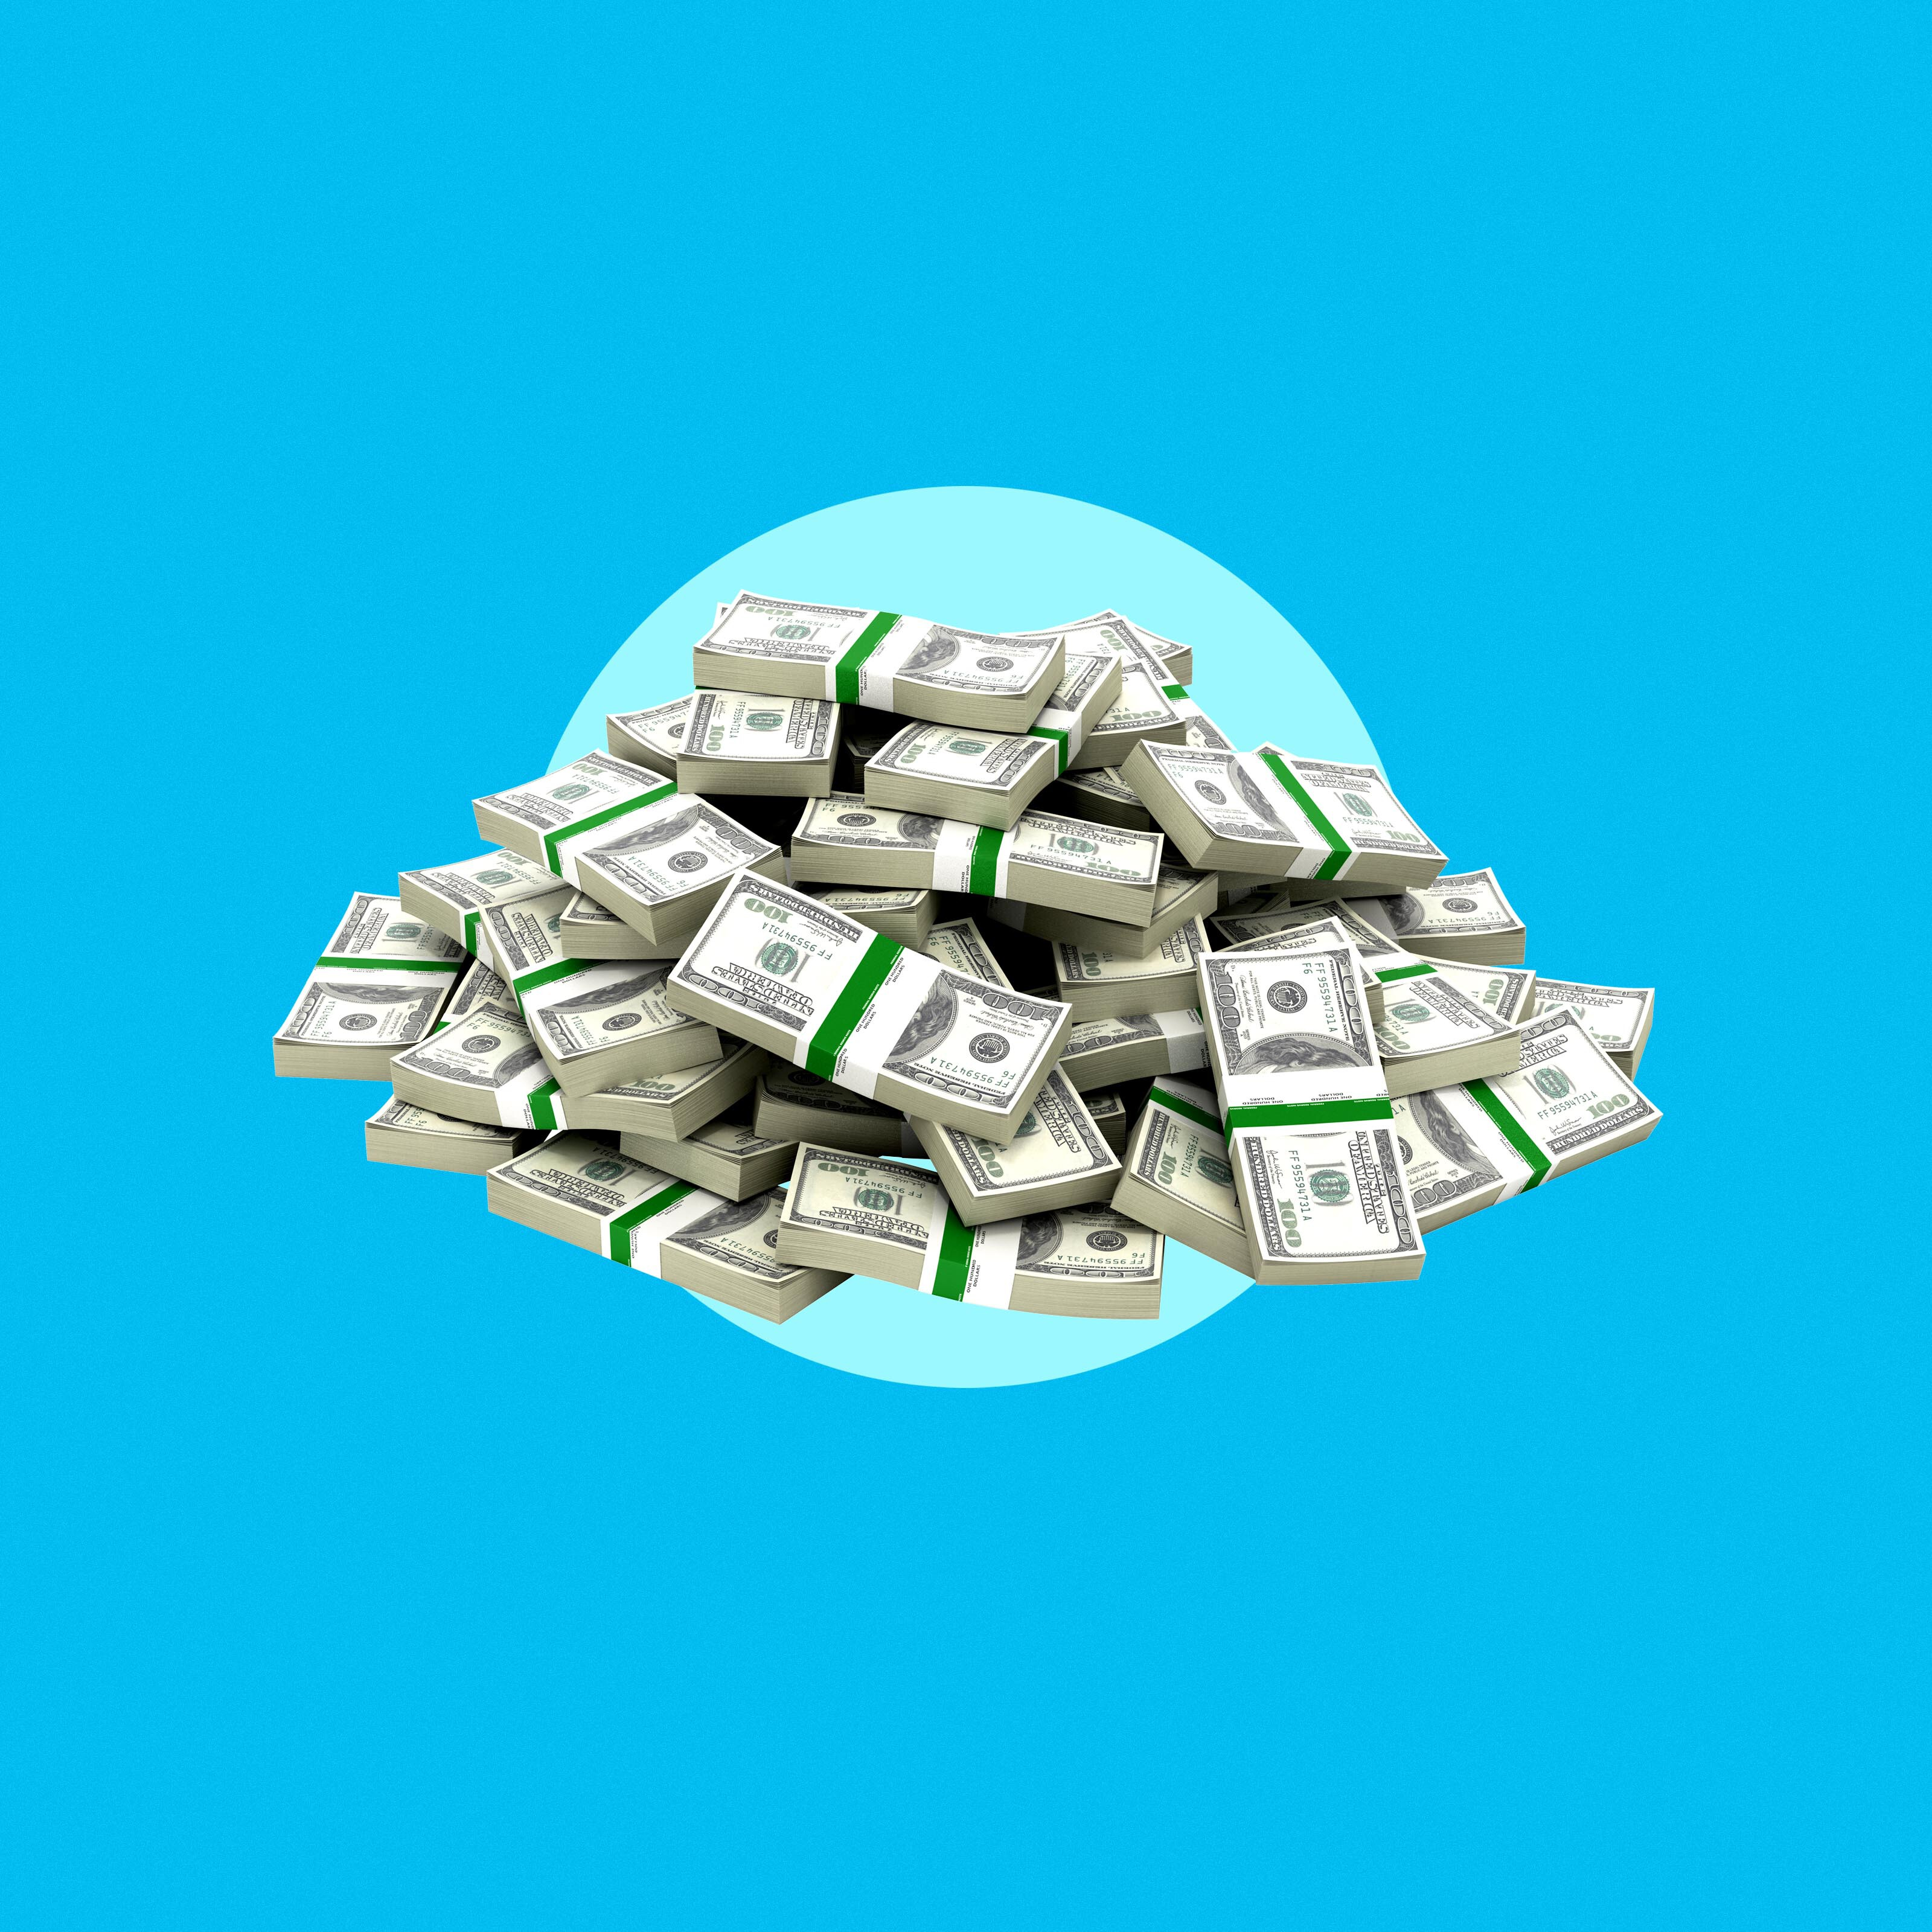 You know your salary. But how much are you really making? Calculate your total compensation